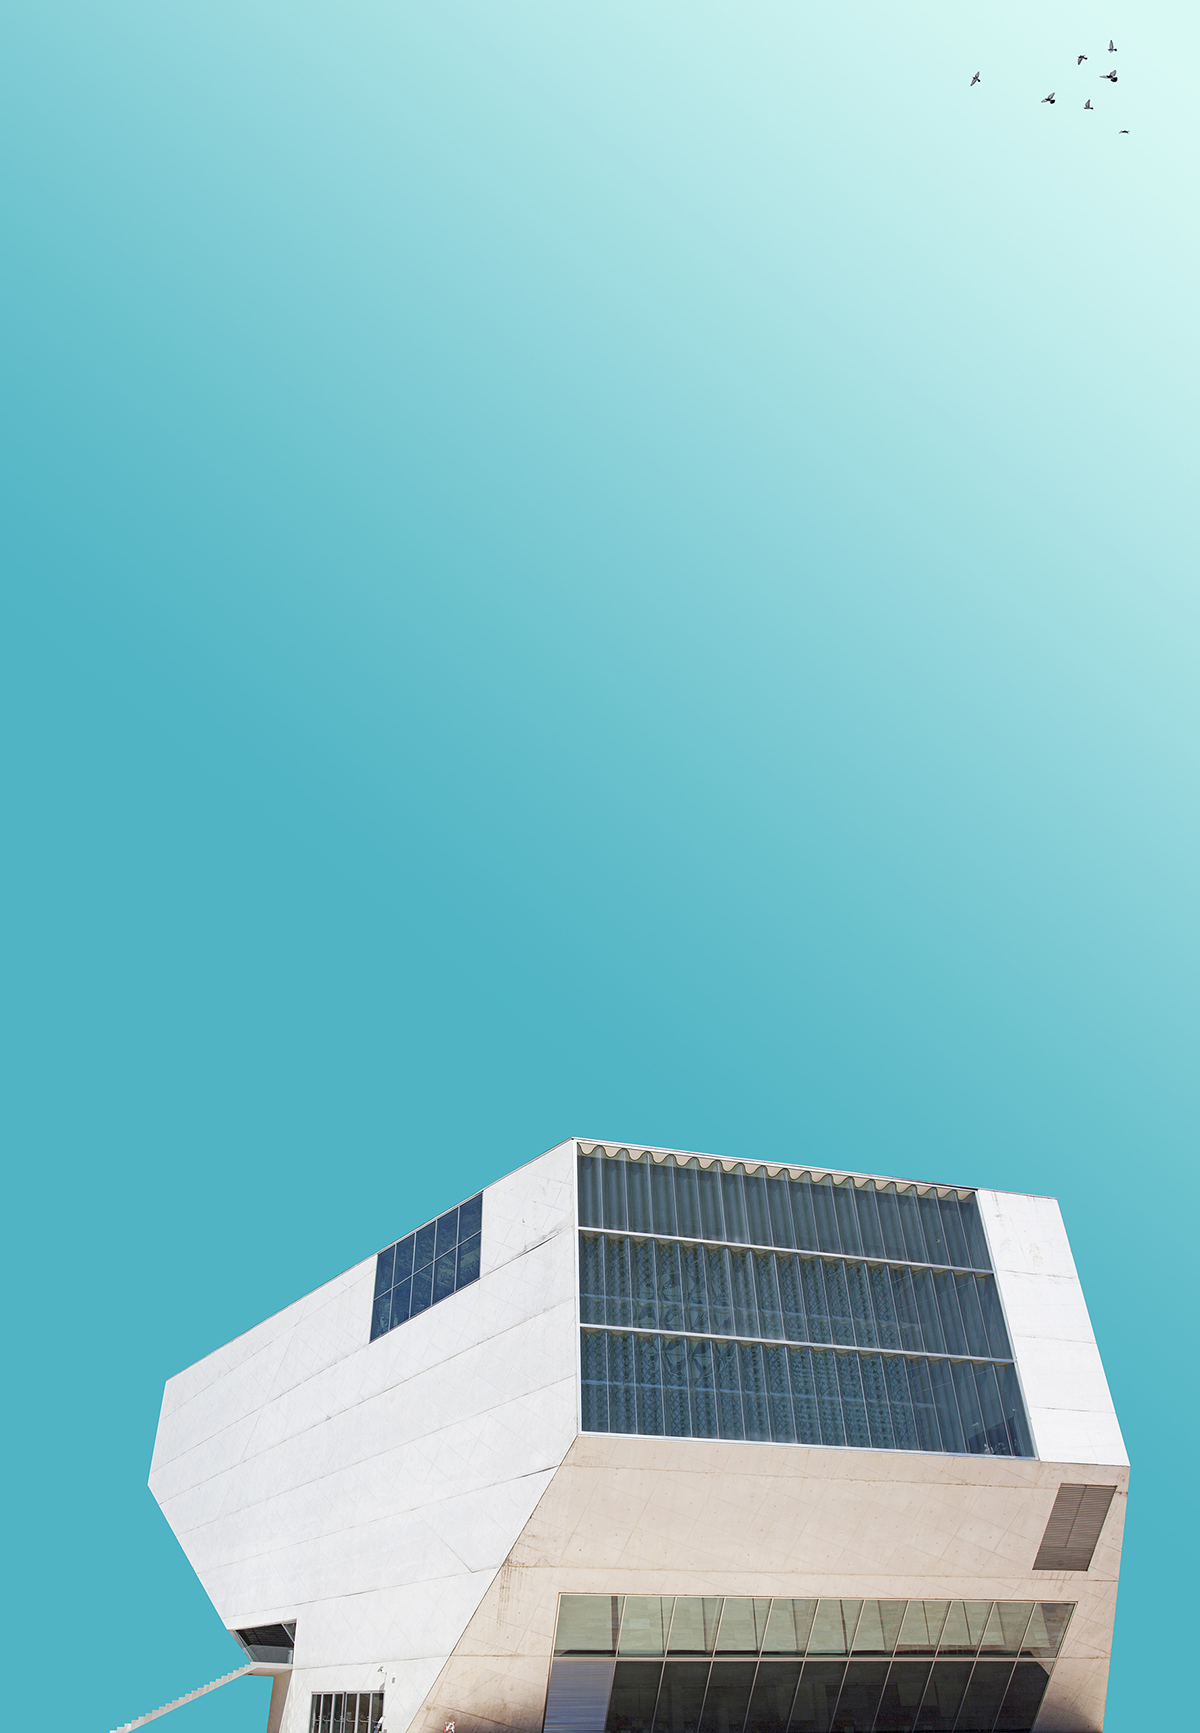 Amazing Abstract Wallpapers Hd Minimal Pure Minimalistic Architecture Photos Refe